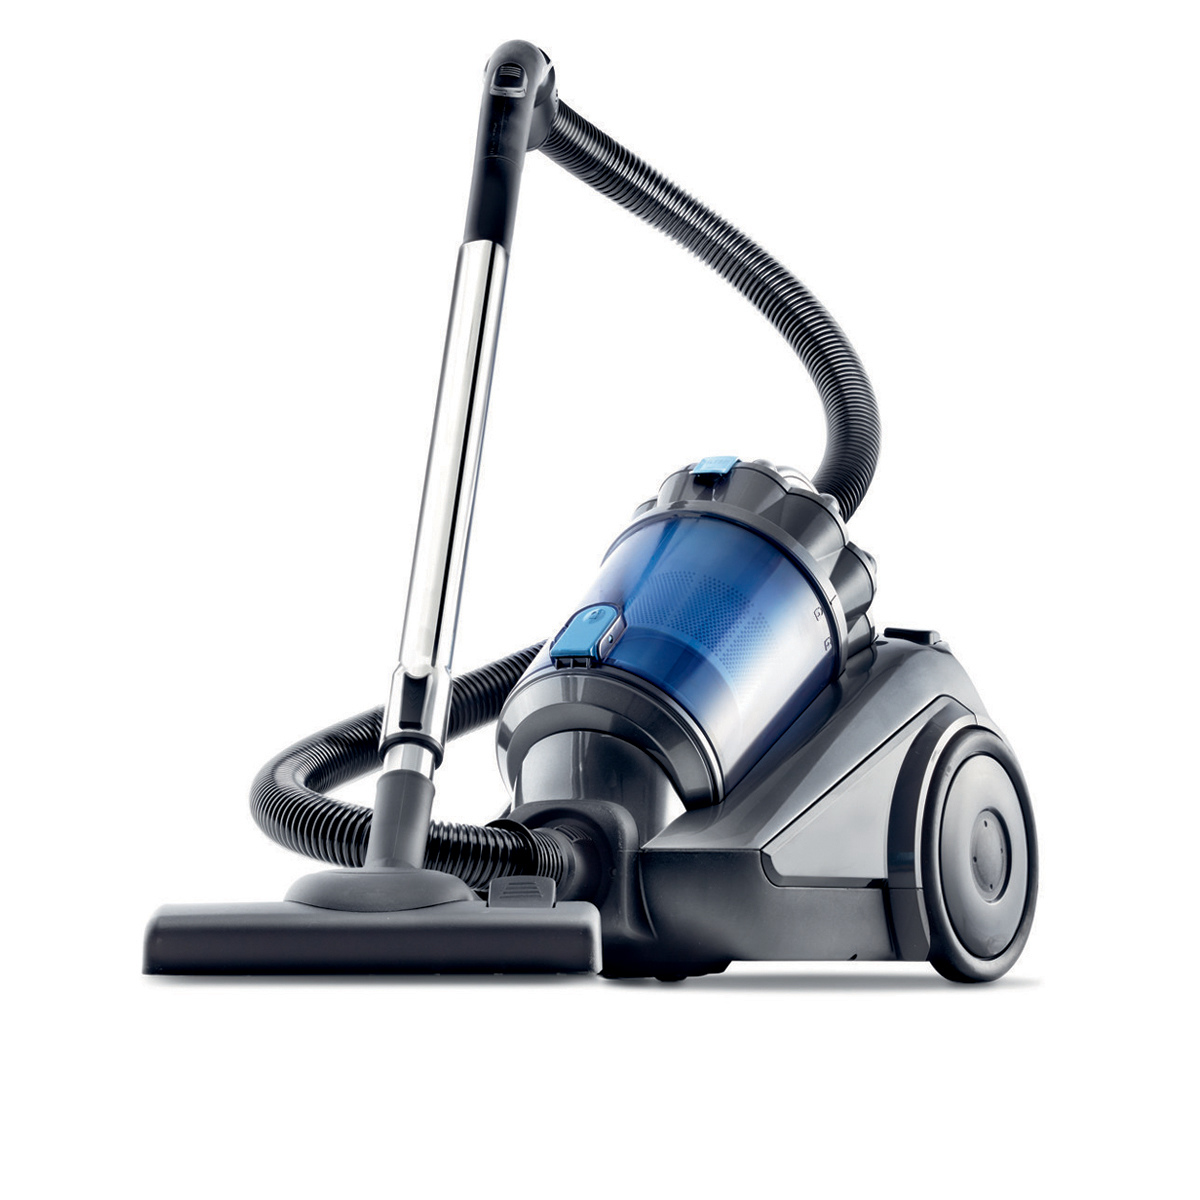 Best Tips for Selecting the Proper Vacuum Cleaner Suited For Your Room Space